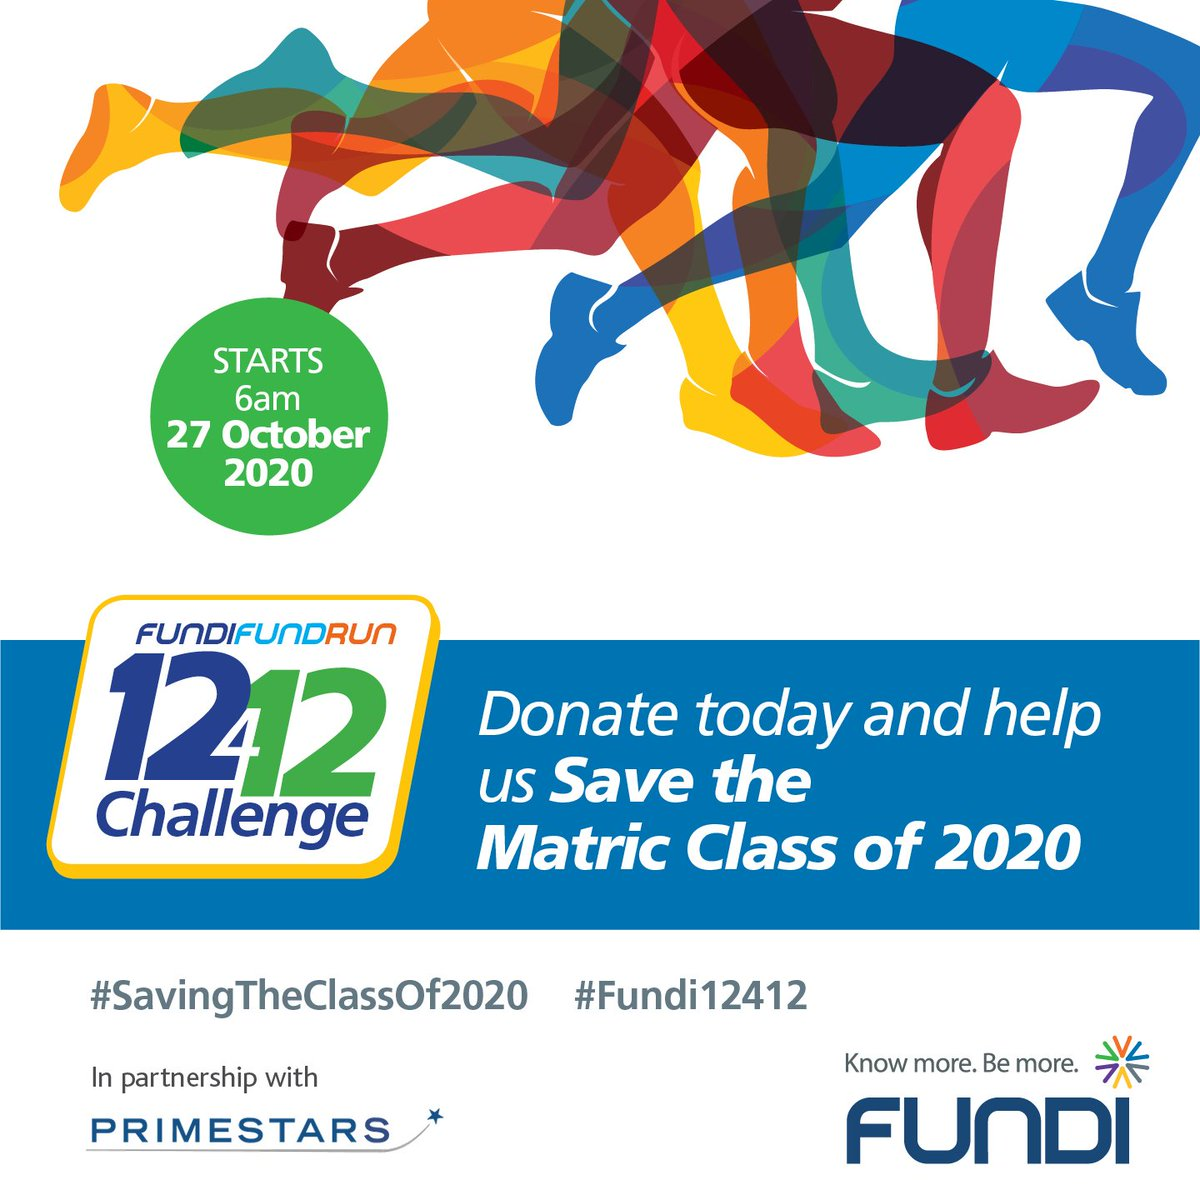 @Official_FUNDI is hosting a Fund Run to raise R12 Million towards learners from township and rural schools who were seriously disadvantaged during lockdown, and needs your help to raise funds before their big exams. Donate today & stand a chance to win a R500 voucher.  Thread: https://t.co/1nMLDg5Frf